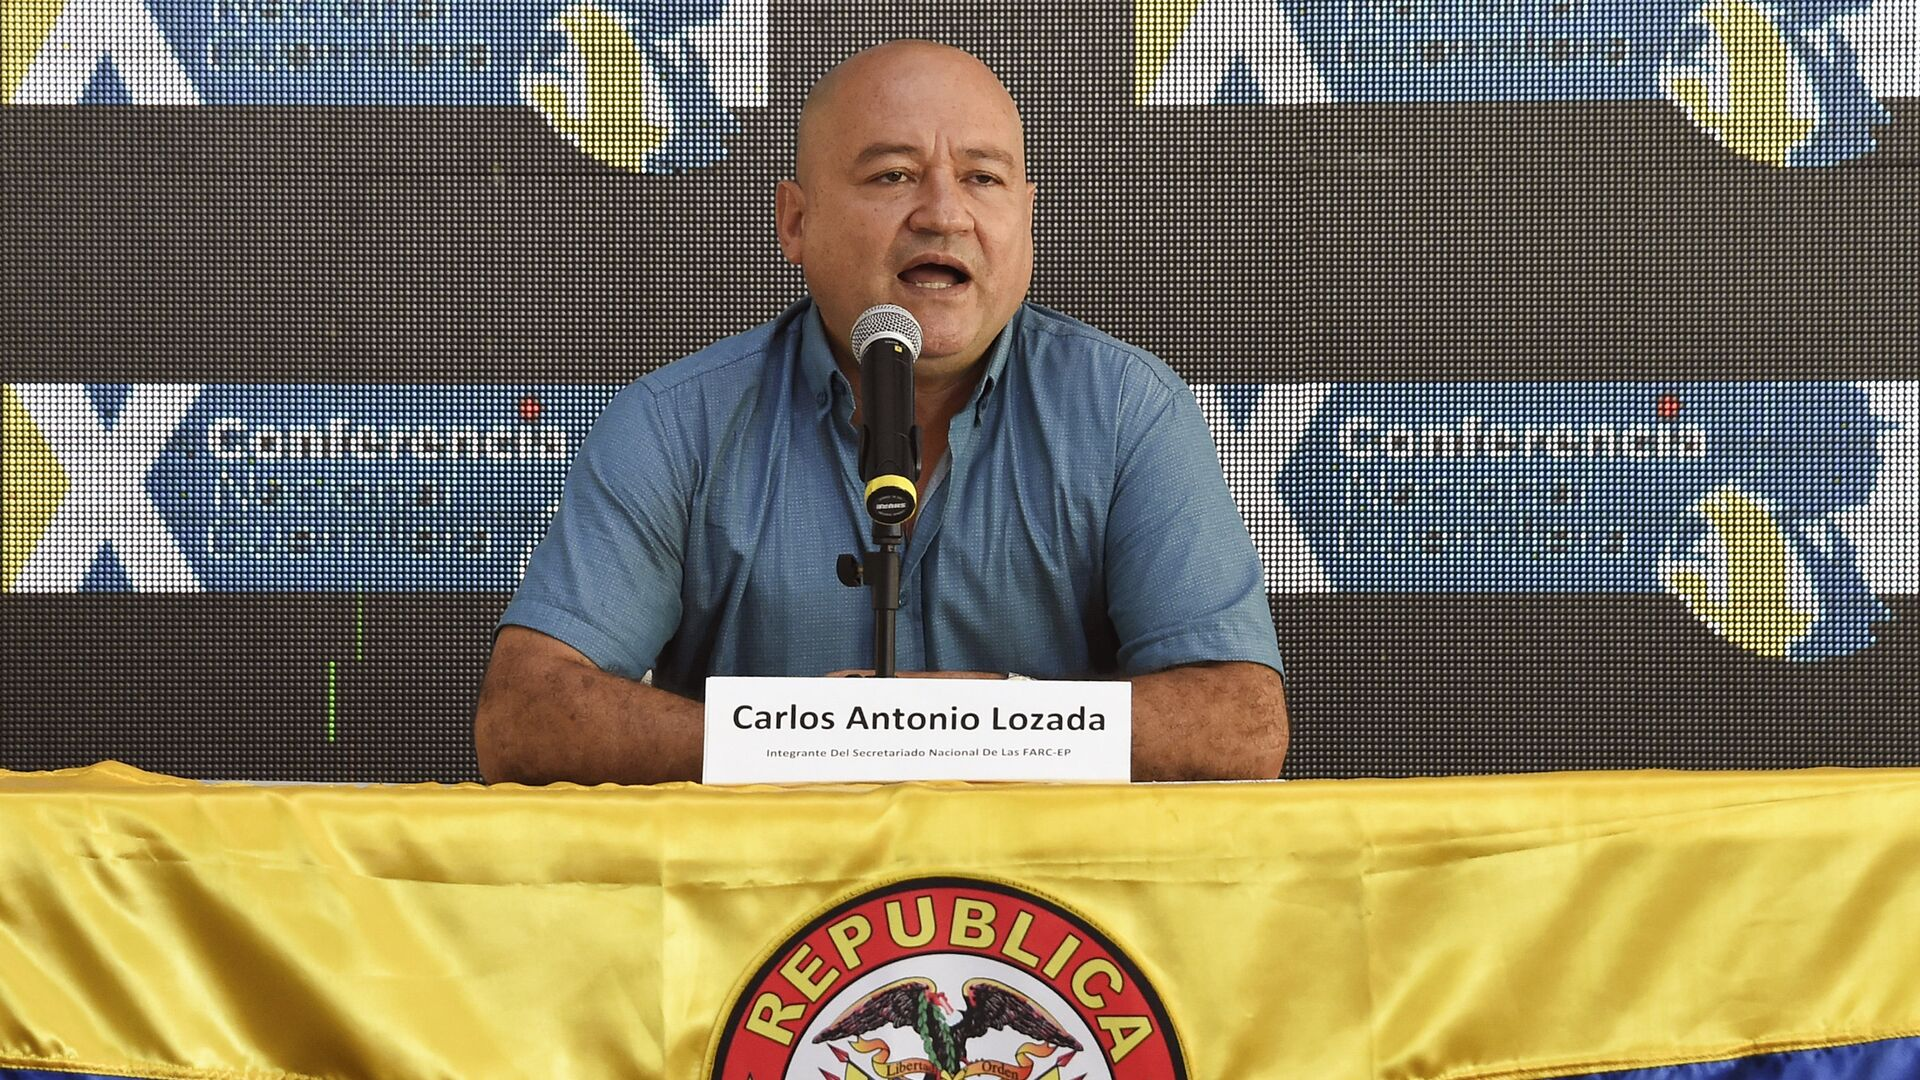 Commander Carlos Antonio Lozada, member of the direction of the Revolutionary Armed Forces of Colombia (FARC), speaks during the 10th National Guerrilla Conference in Llanos del Yari, Caqueta department, Colombia, on September - Sputnik Mundo, 1920, 12.08.2021